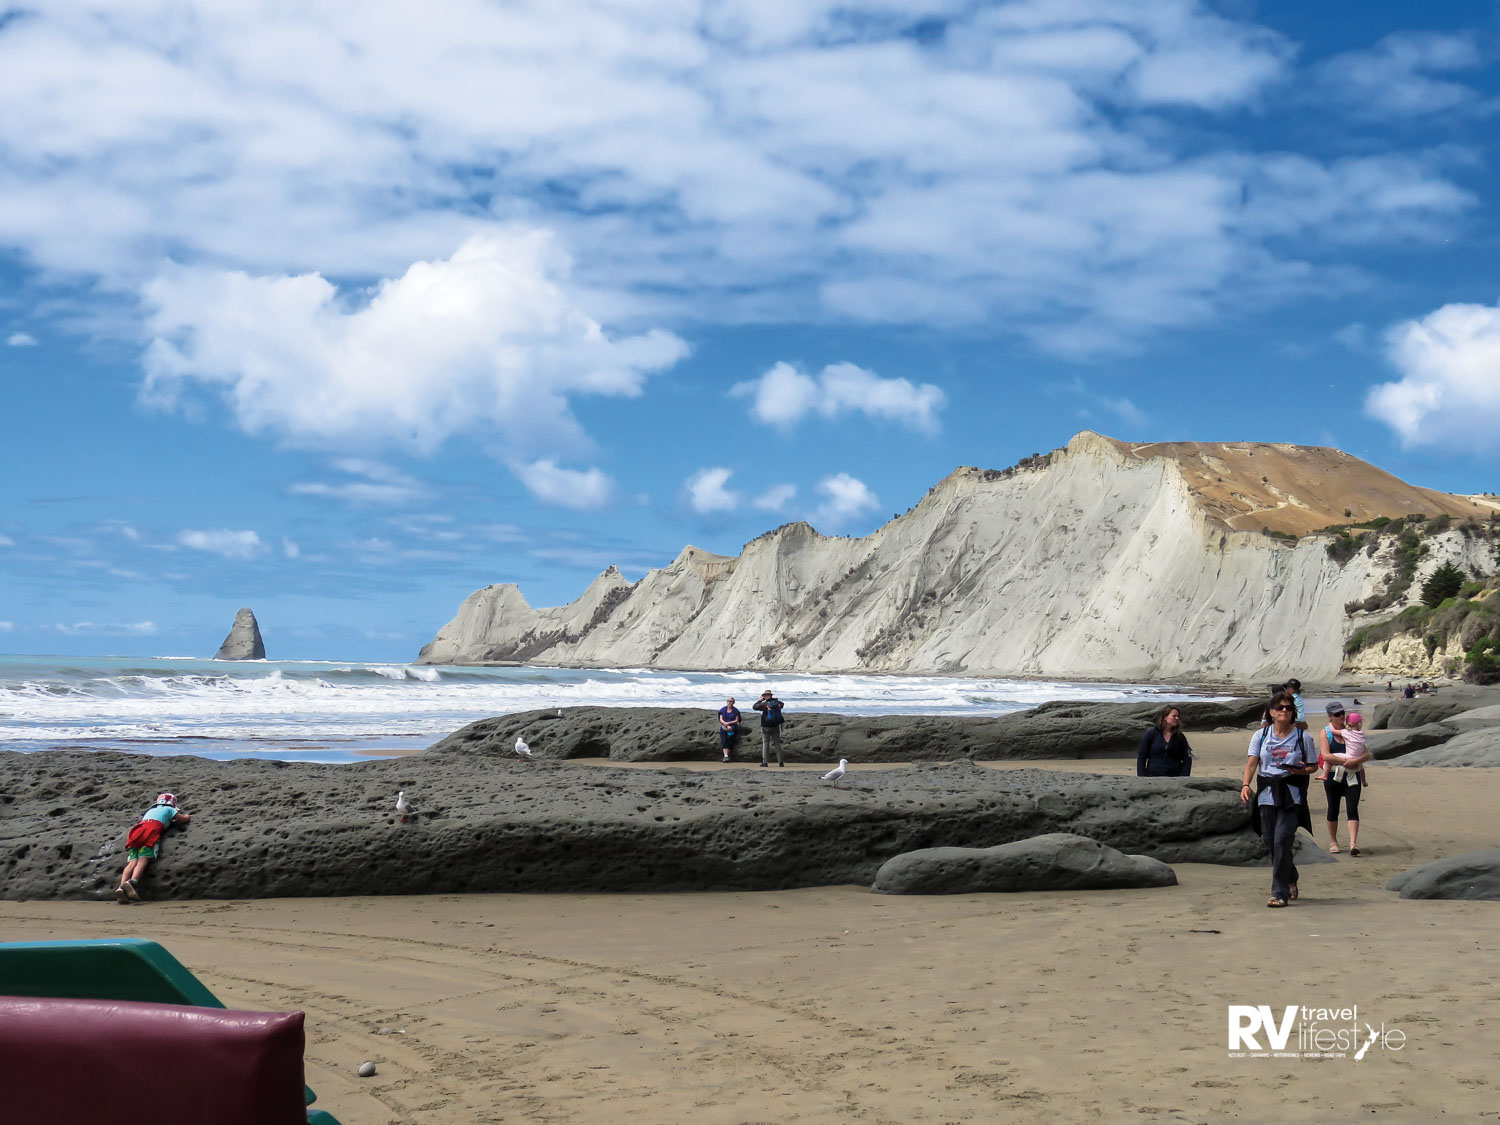 Cape Kidnappers beach